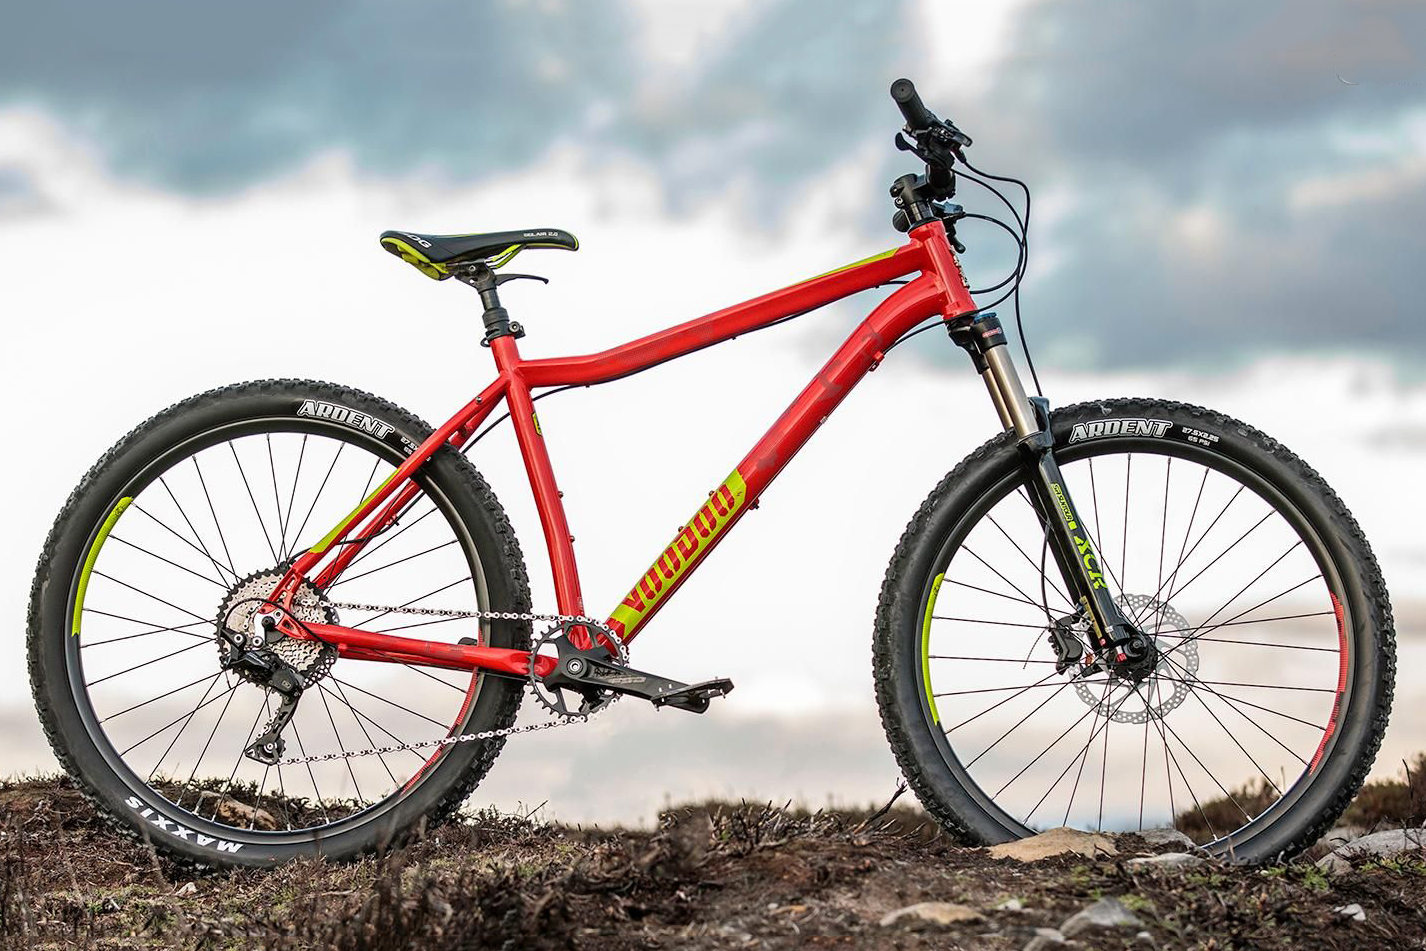 Best mountain bikes under £500 in 2019 | Top-rated budget MTBs